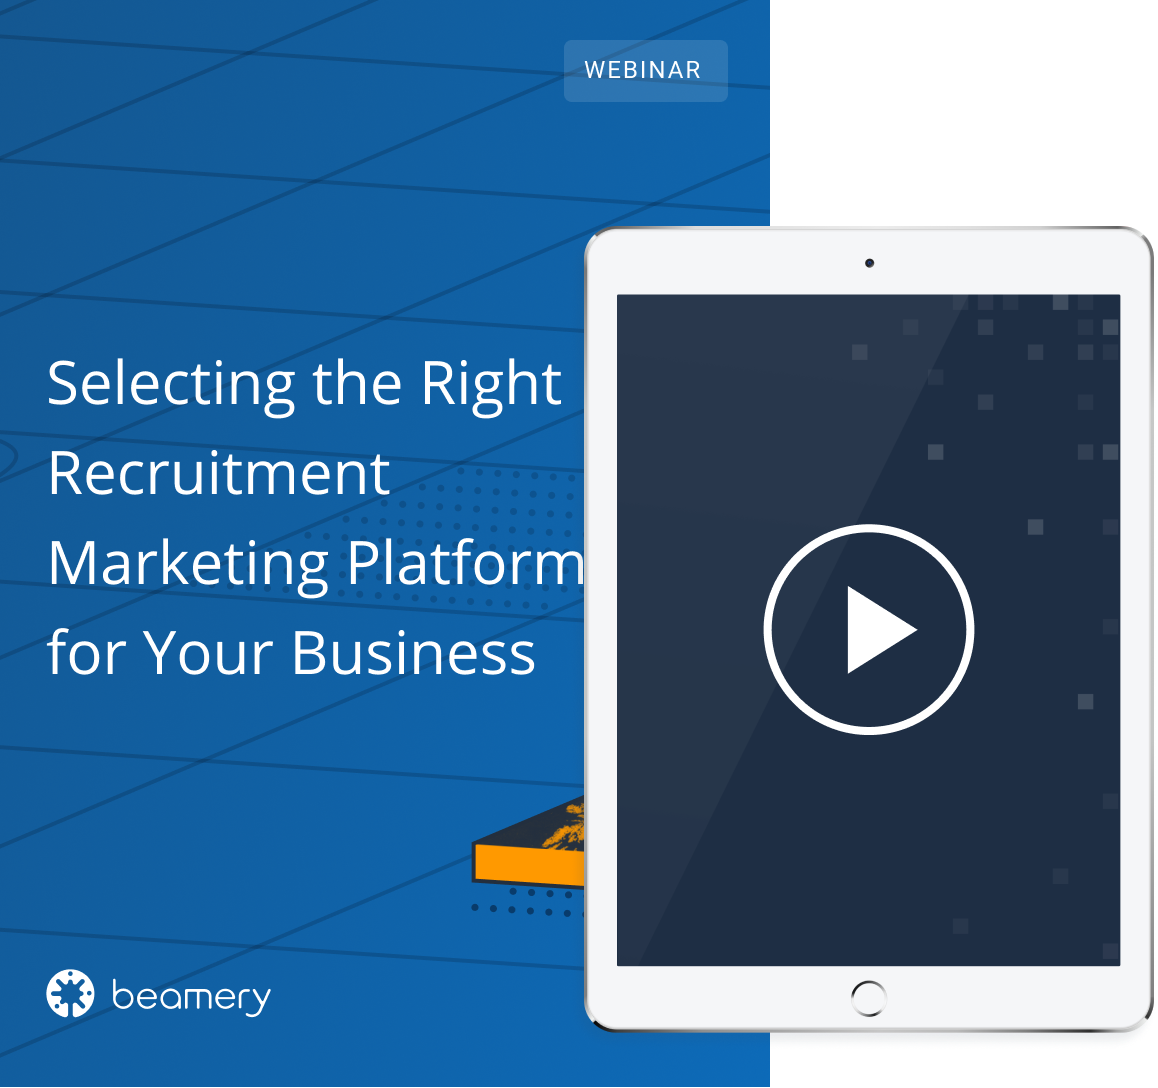 Selecting the Right Recruitment Marketing Platform for your Business